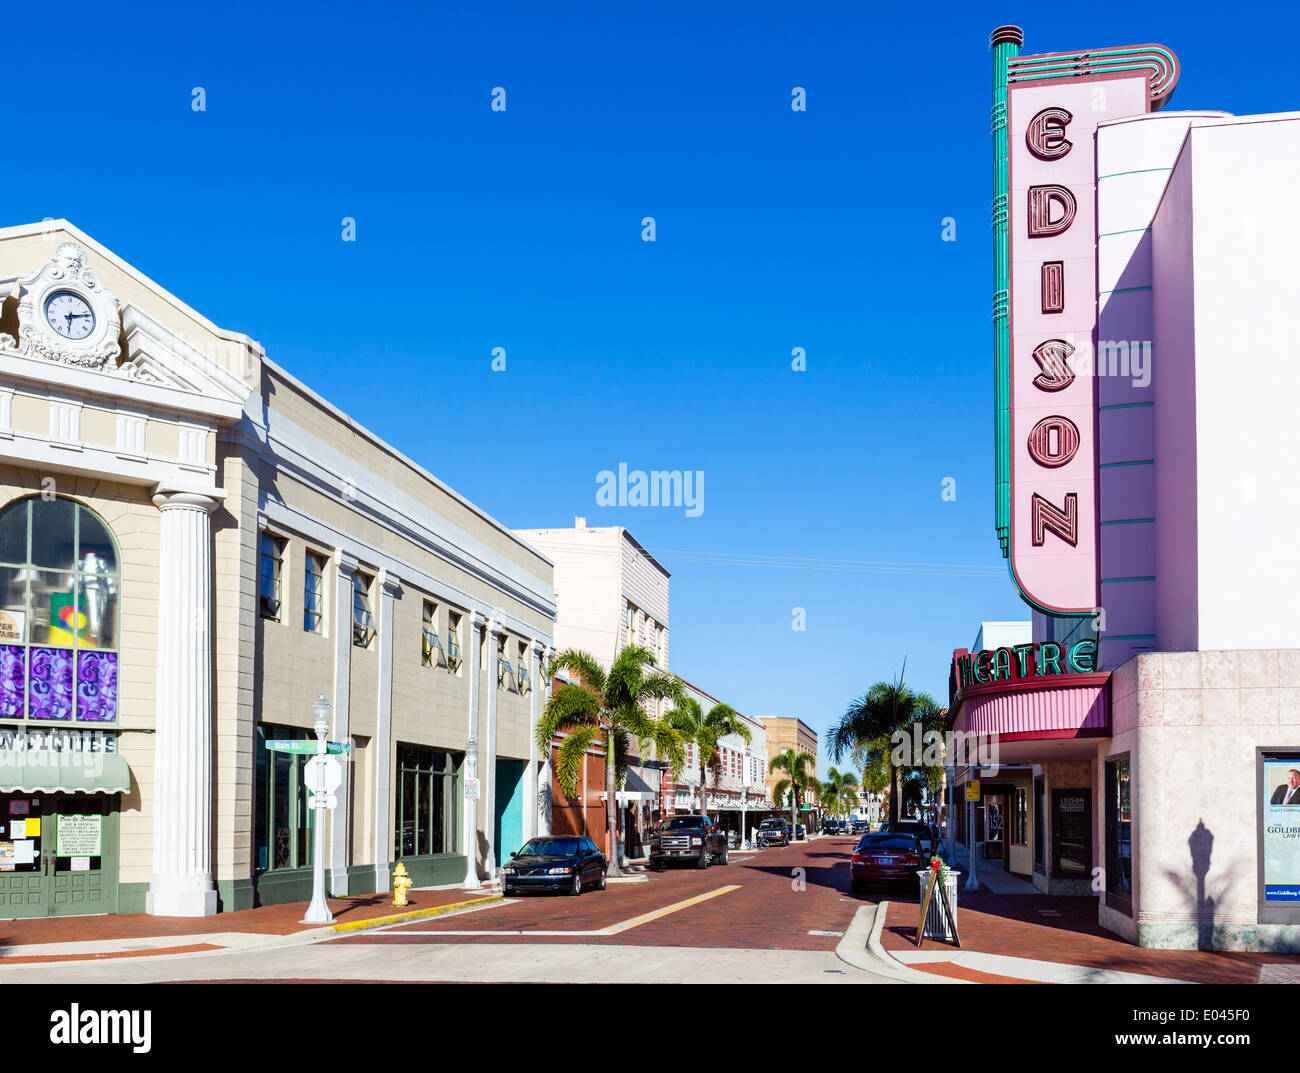 View down Hendry Street at Main St intersection, with the Edison Theater on right, historic downtown Fort Myers, Florida, USA - Stock Image